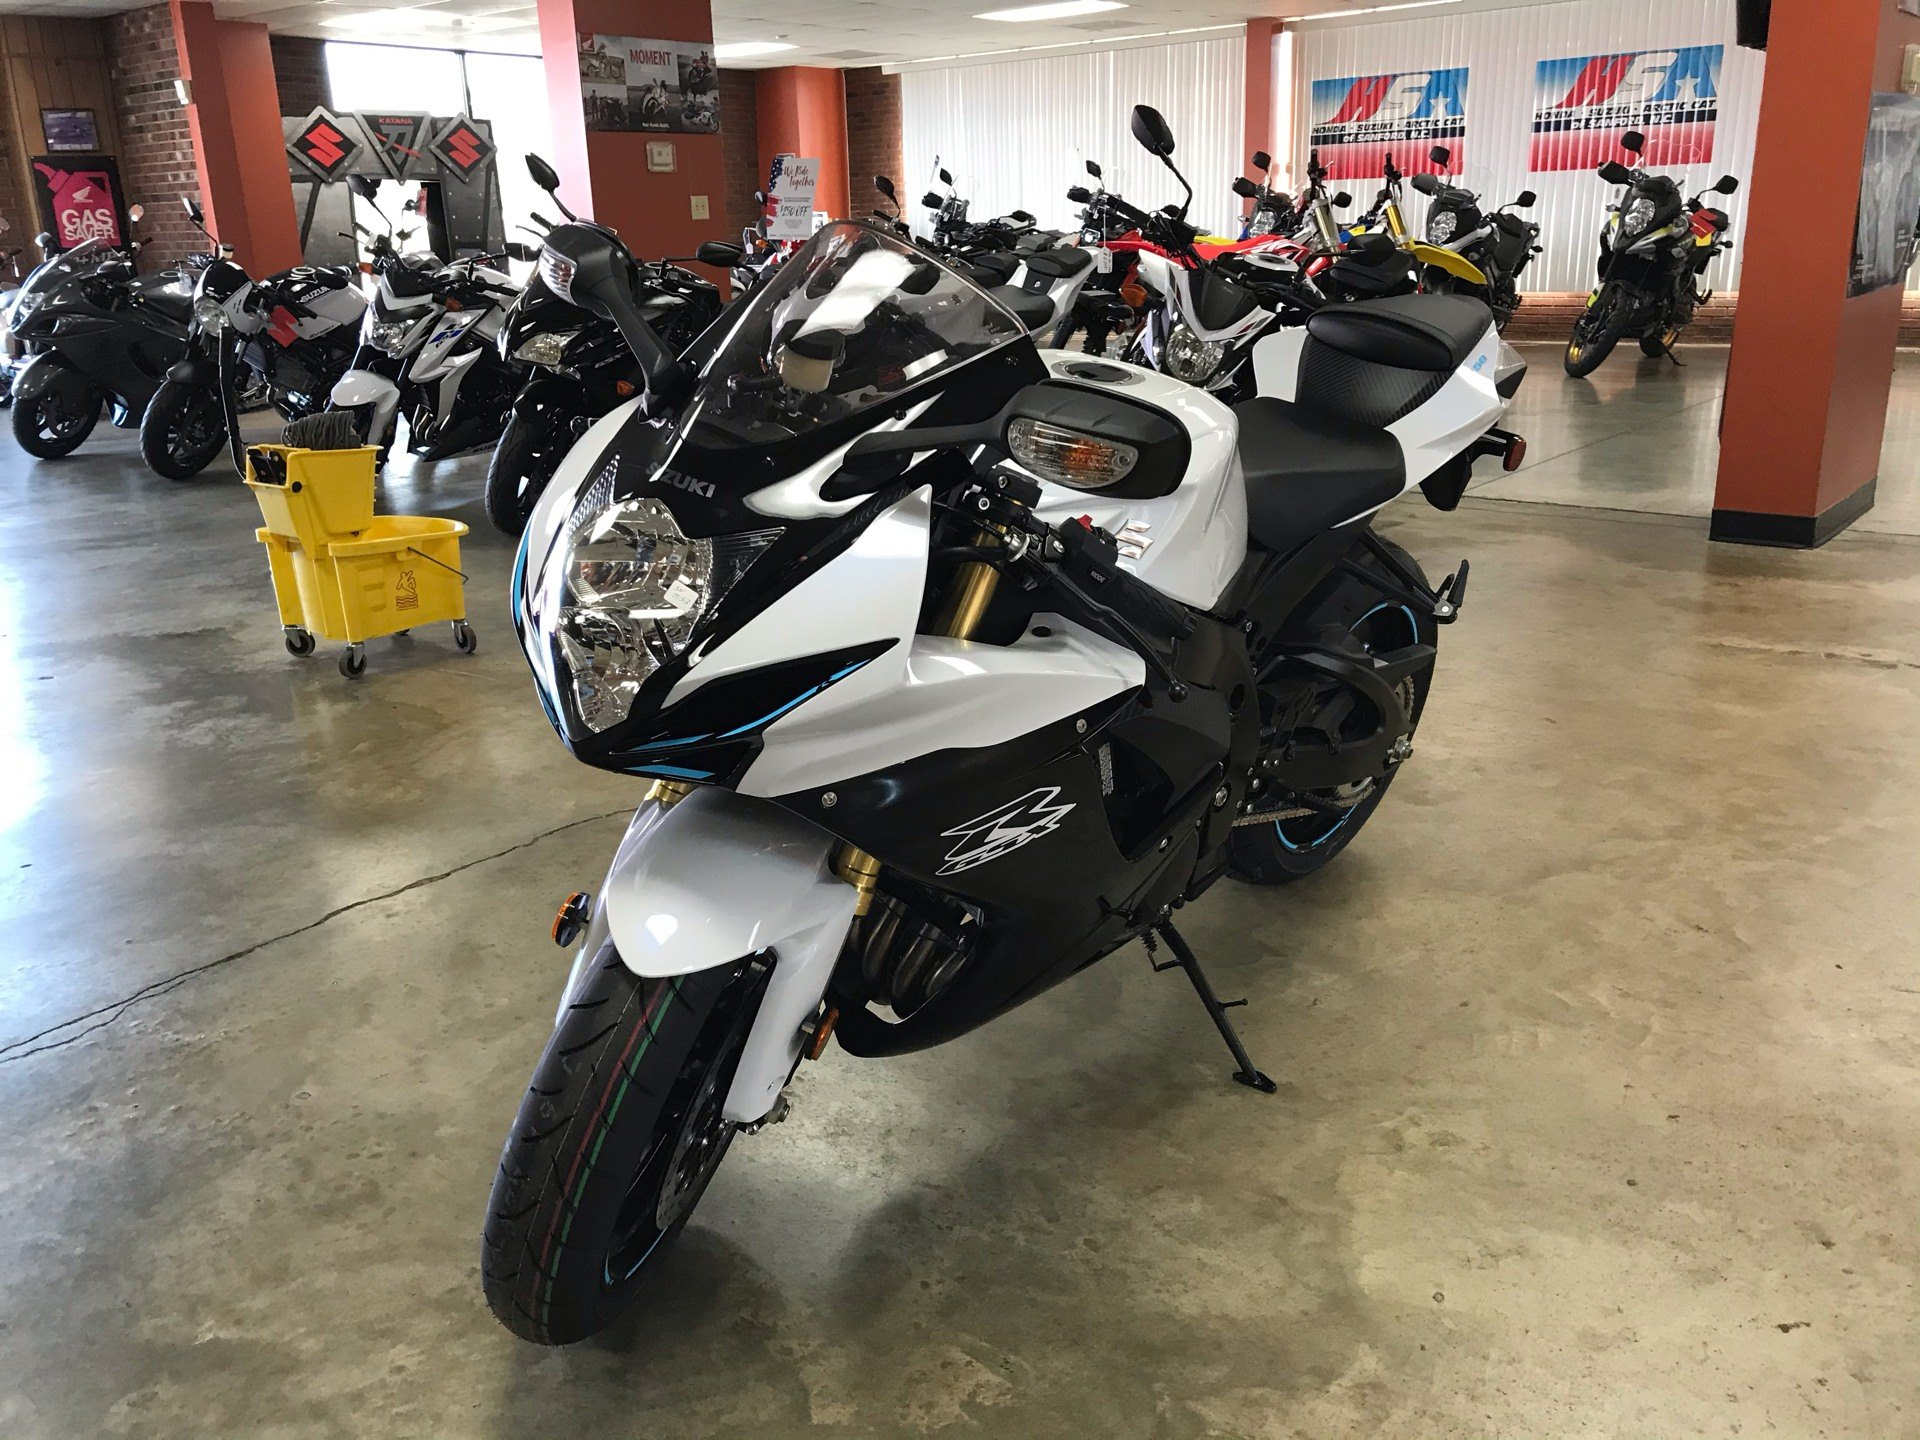 2020 Suzuki GSX-R750 in Sanford, North Carolina - Photo 4